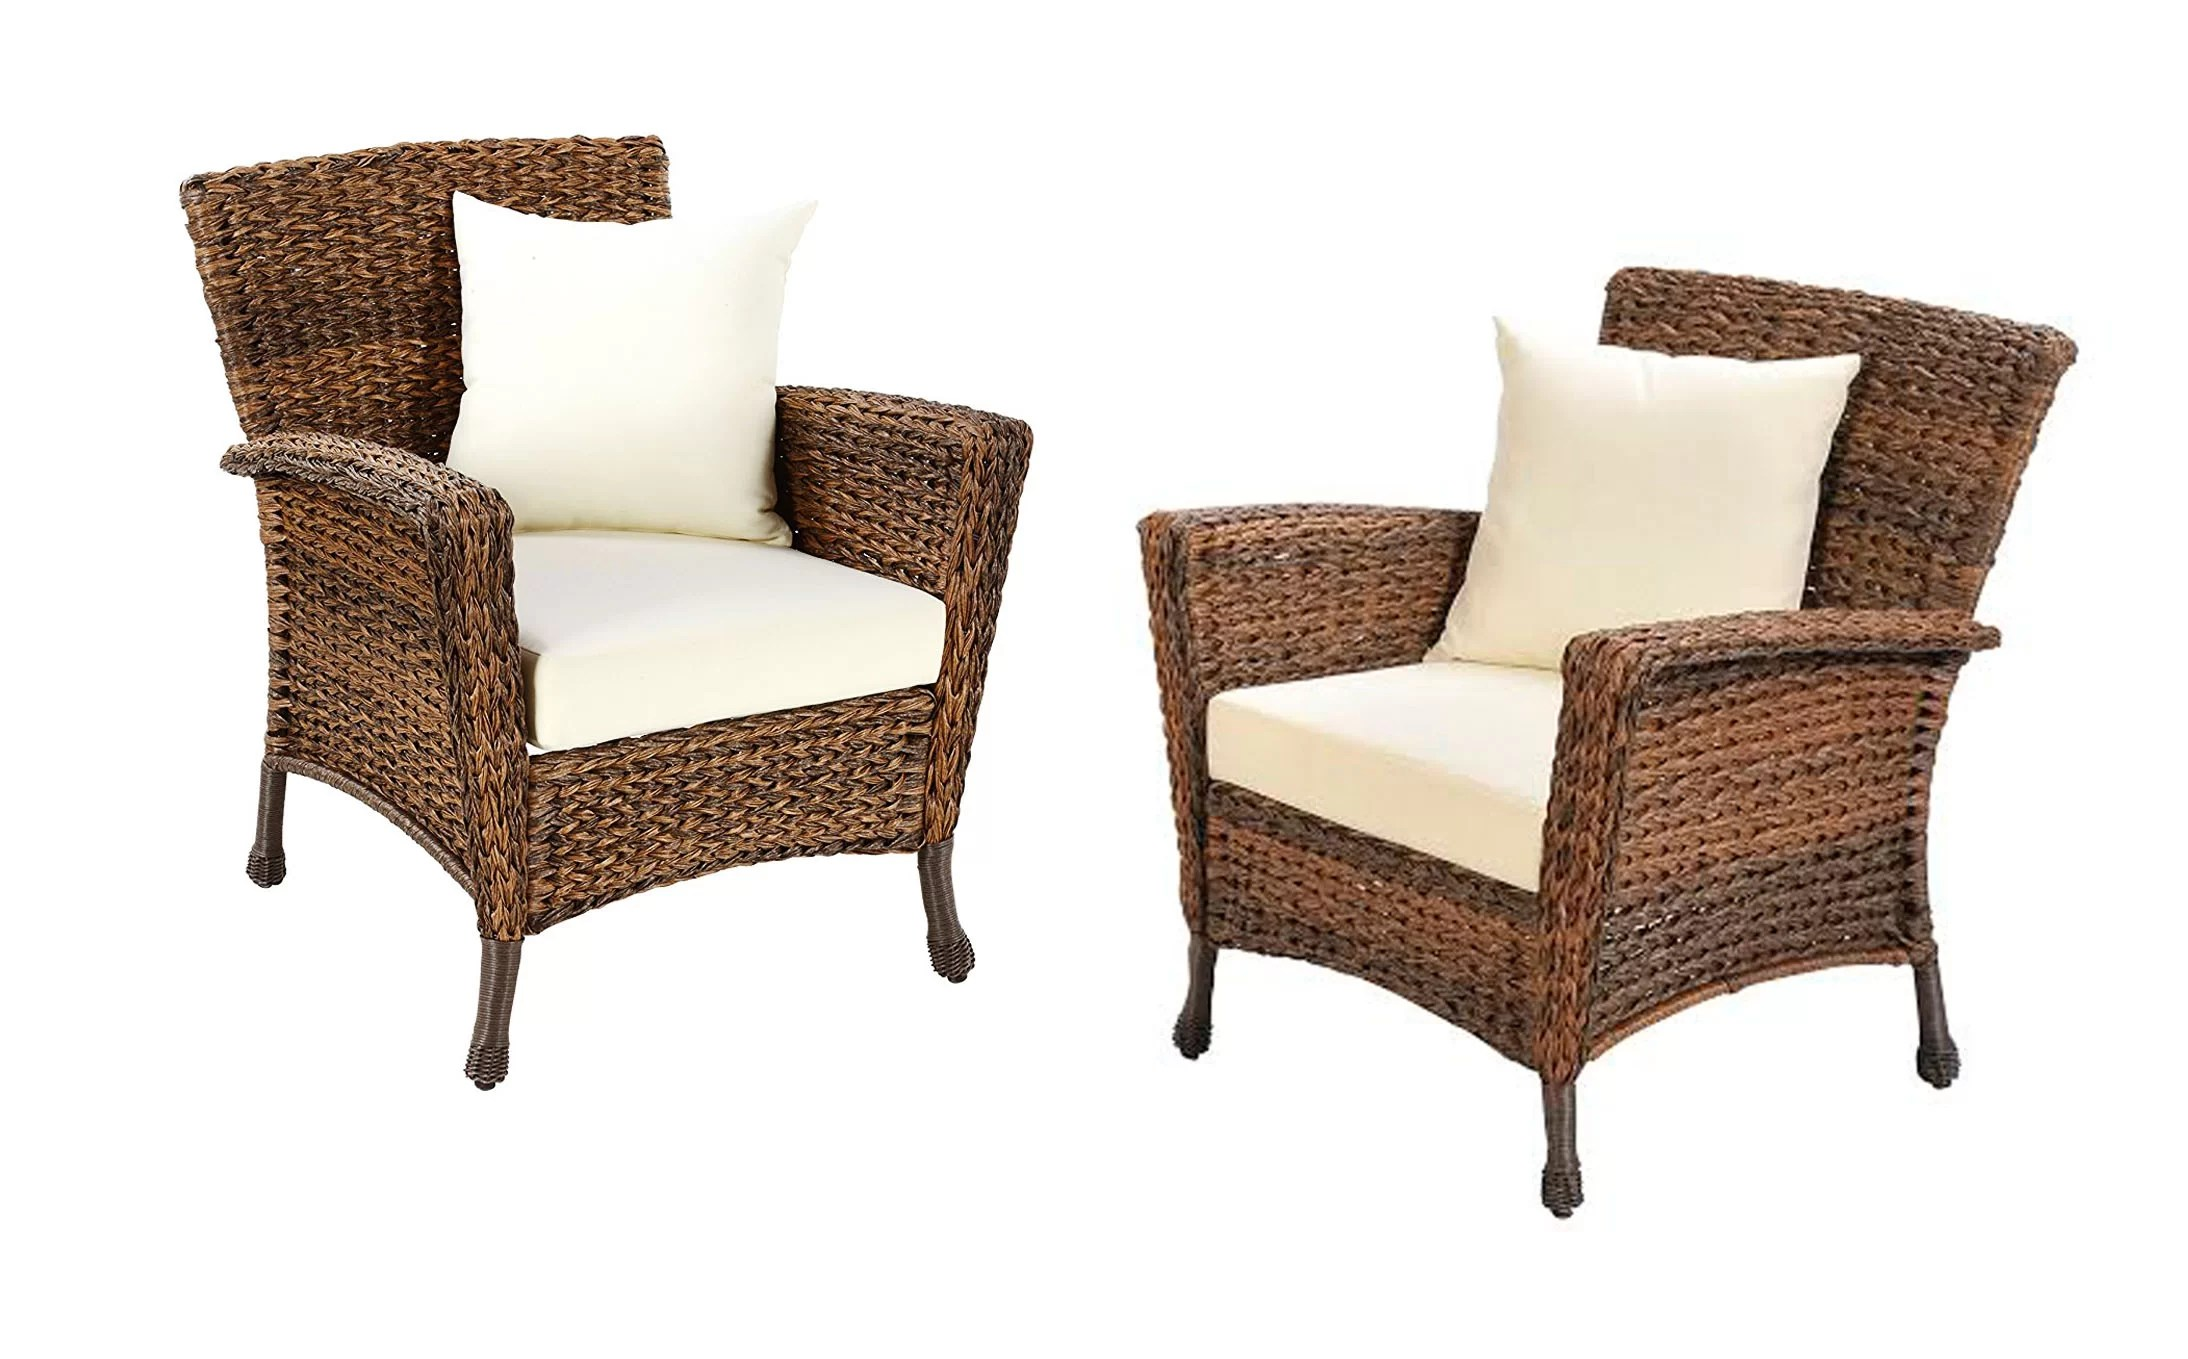 rumsey garden patio furniture 2 piece with cushions